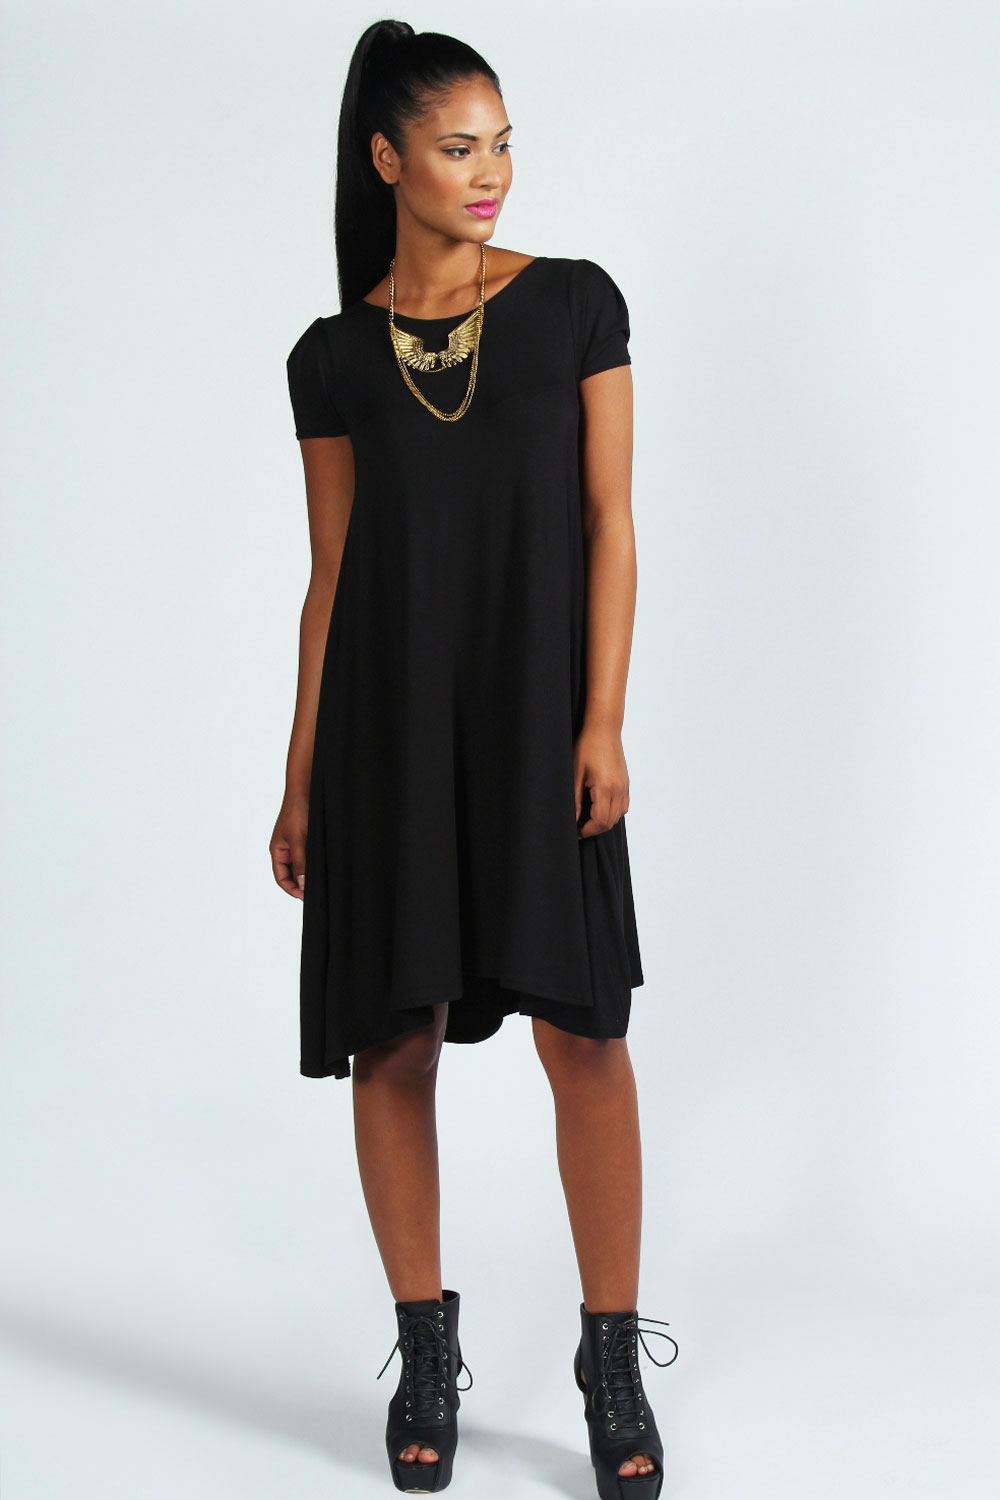 Boohoo Womens Ladies Selma Cap Sleeve Jersey Swing Dress | EBay